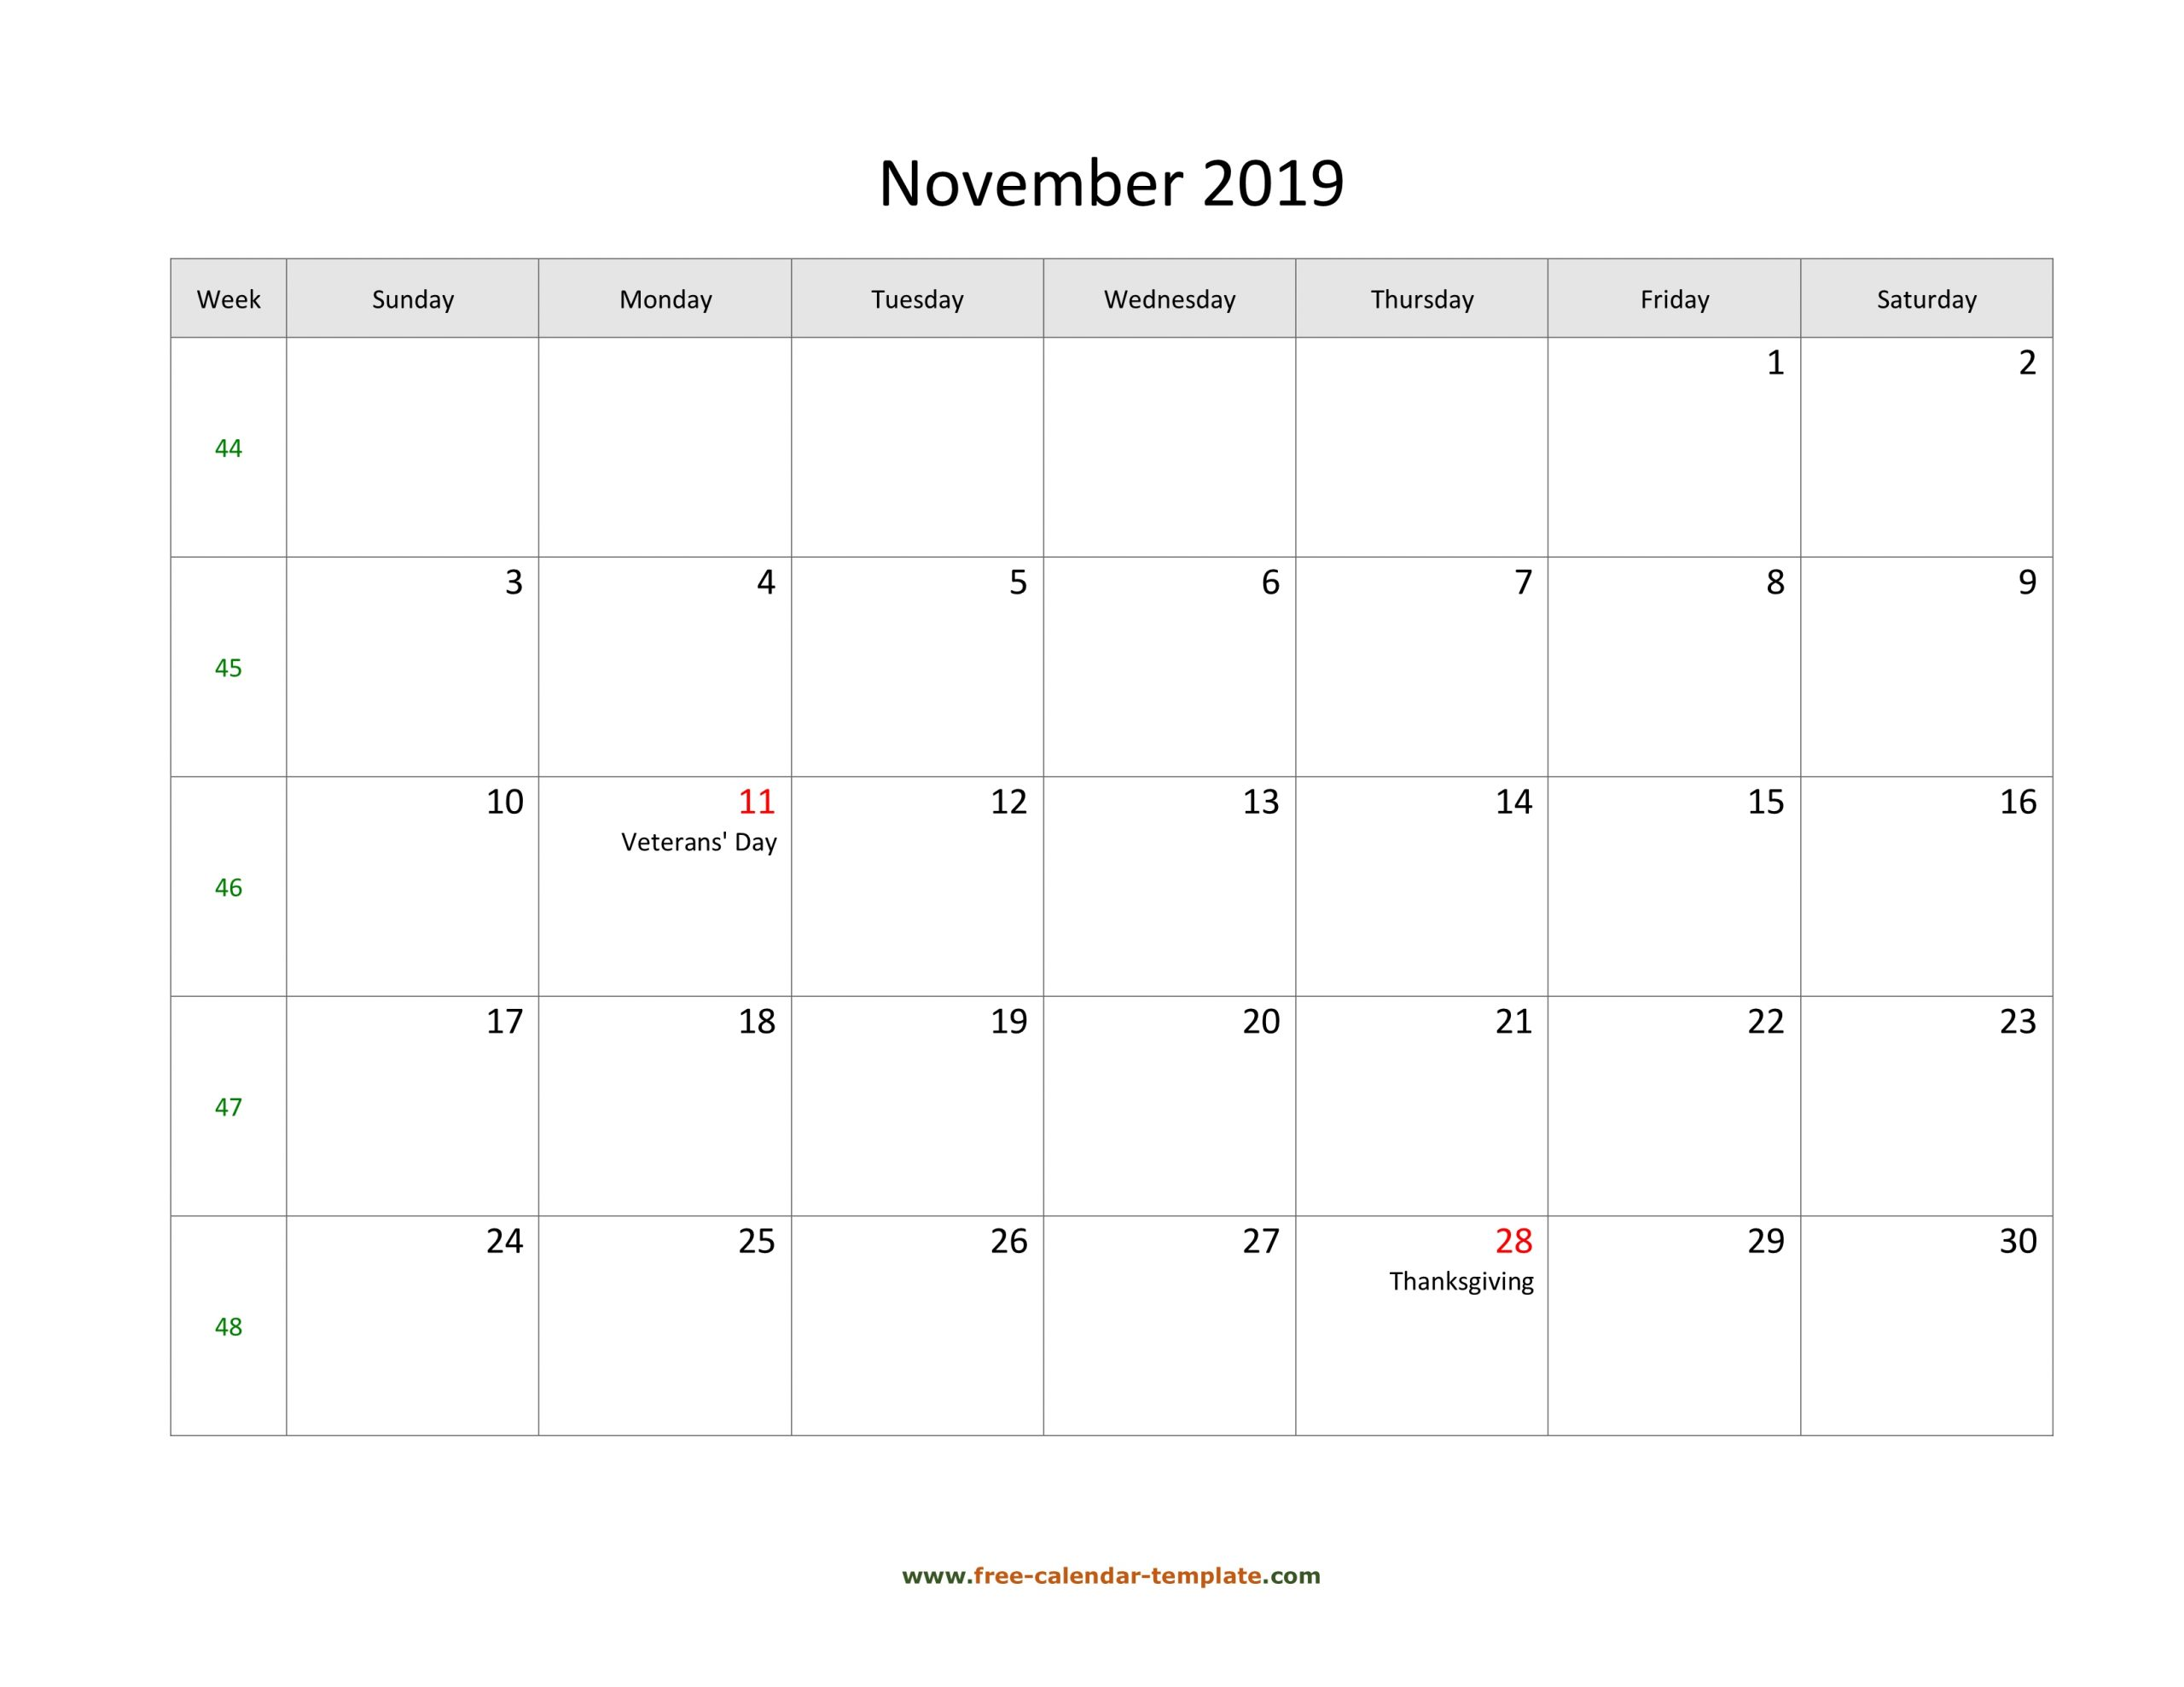 Free 2019 Calendar Blank November Template (Horizontal